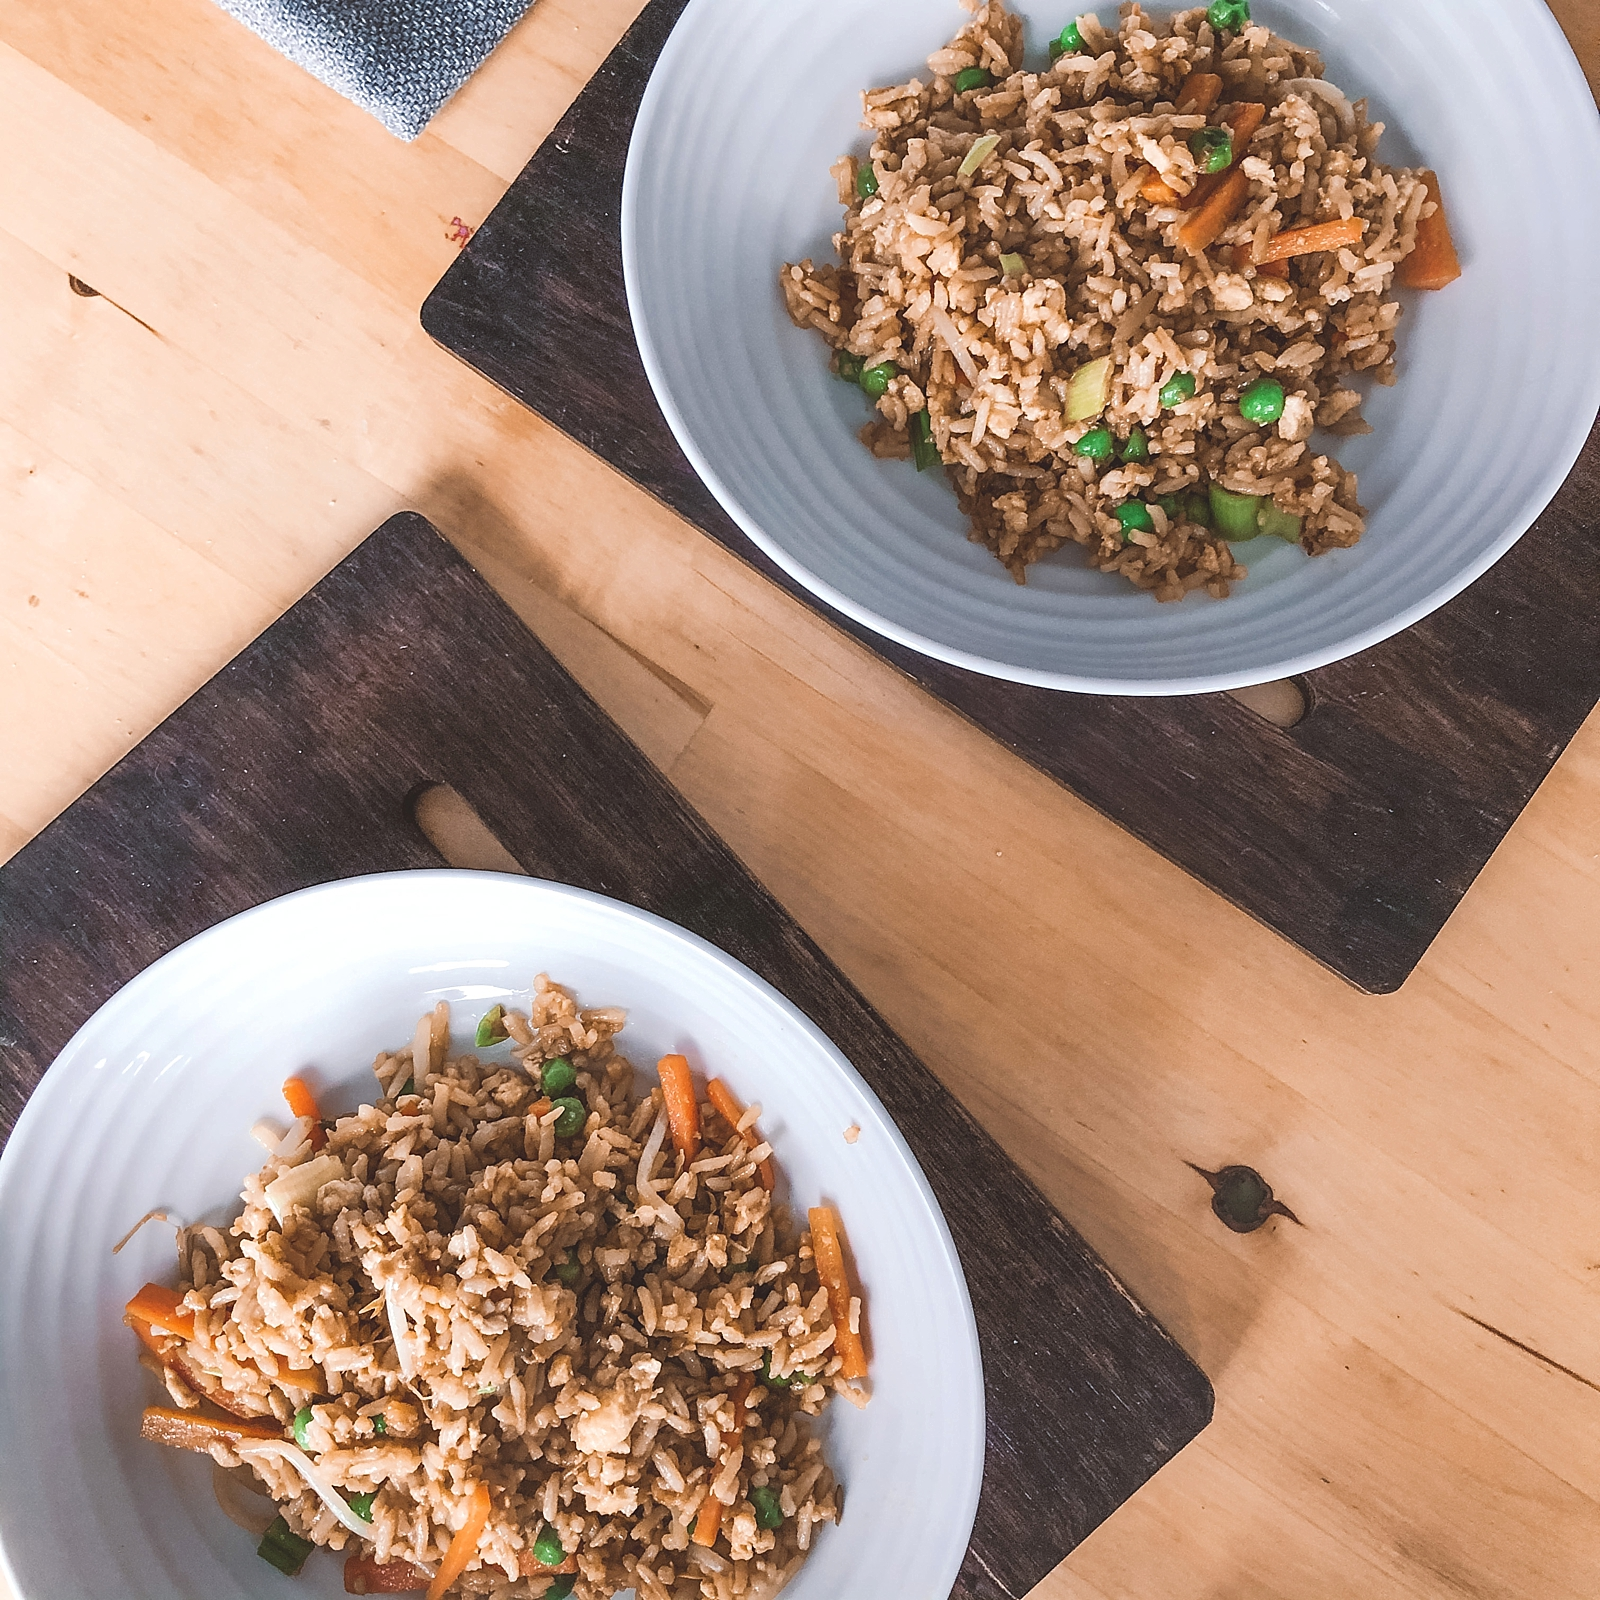 Copycat Gluten Free PF Changs Fried Rice Recipe